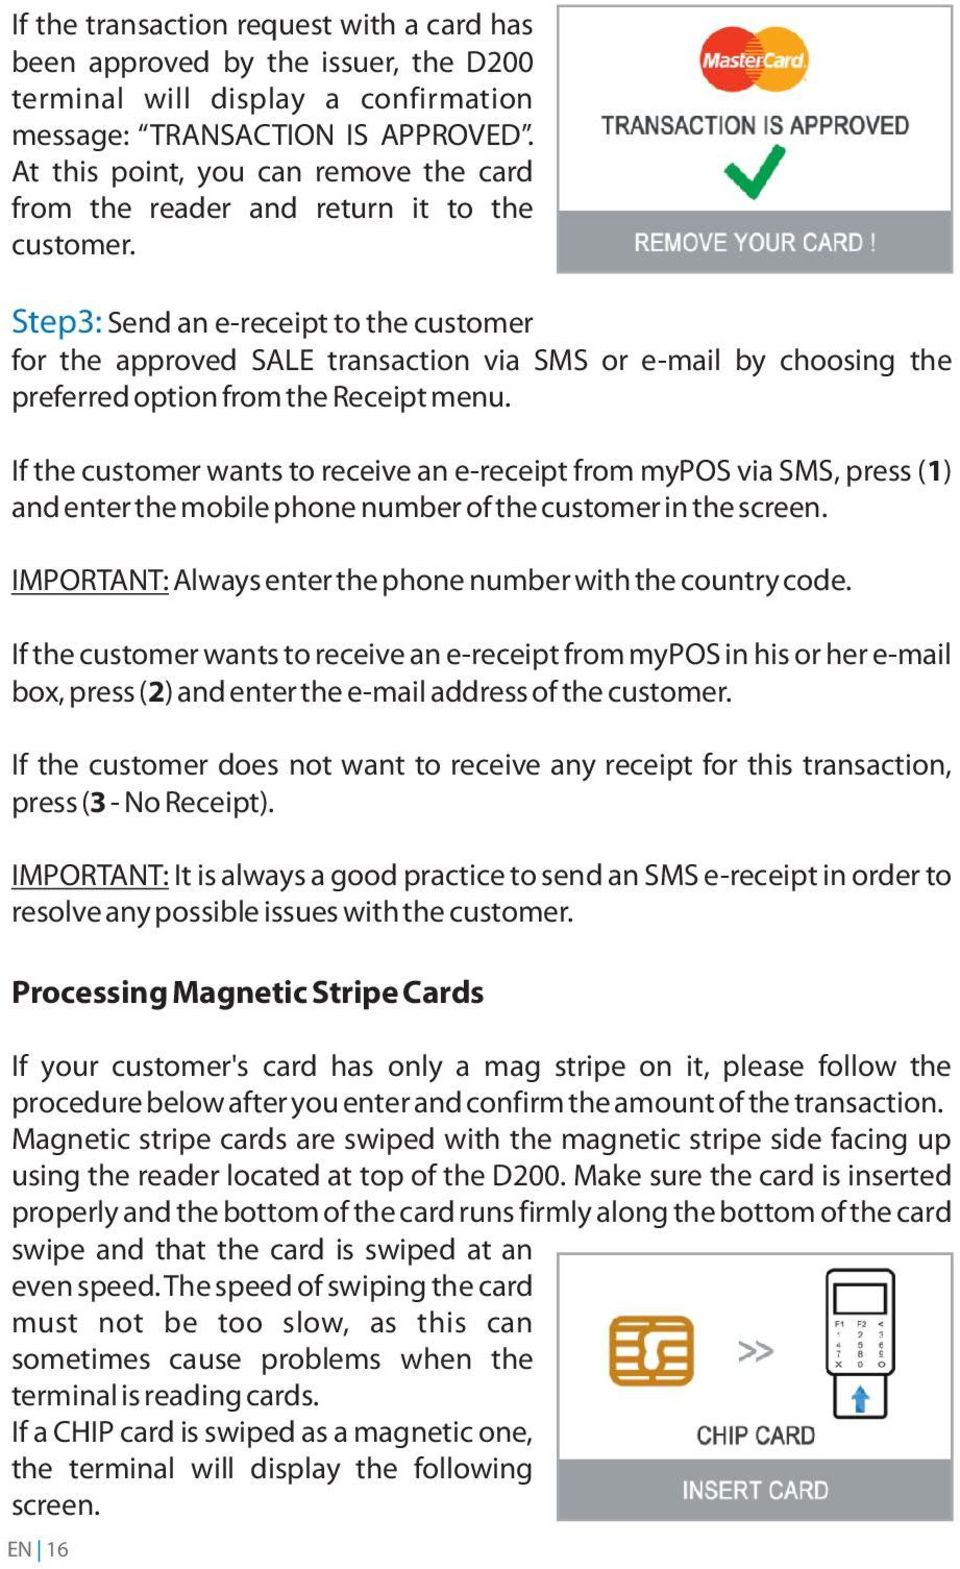 Step3: Send an e-receipt to the customer for the approved SALE transaction via SMS or e-mail by choosing the preferred option from the Receipt menu.